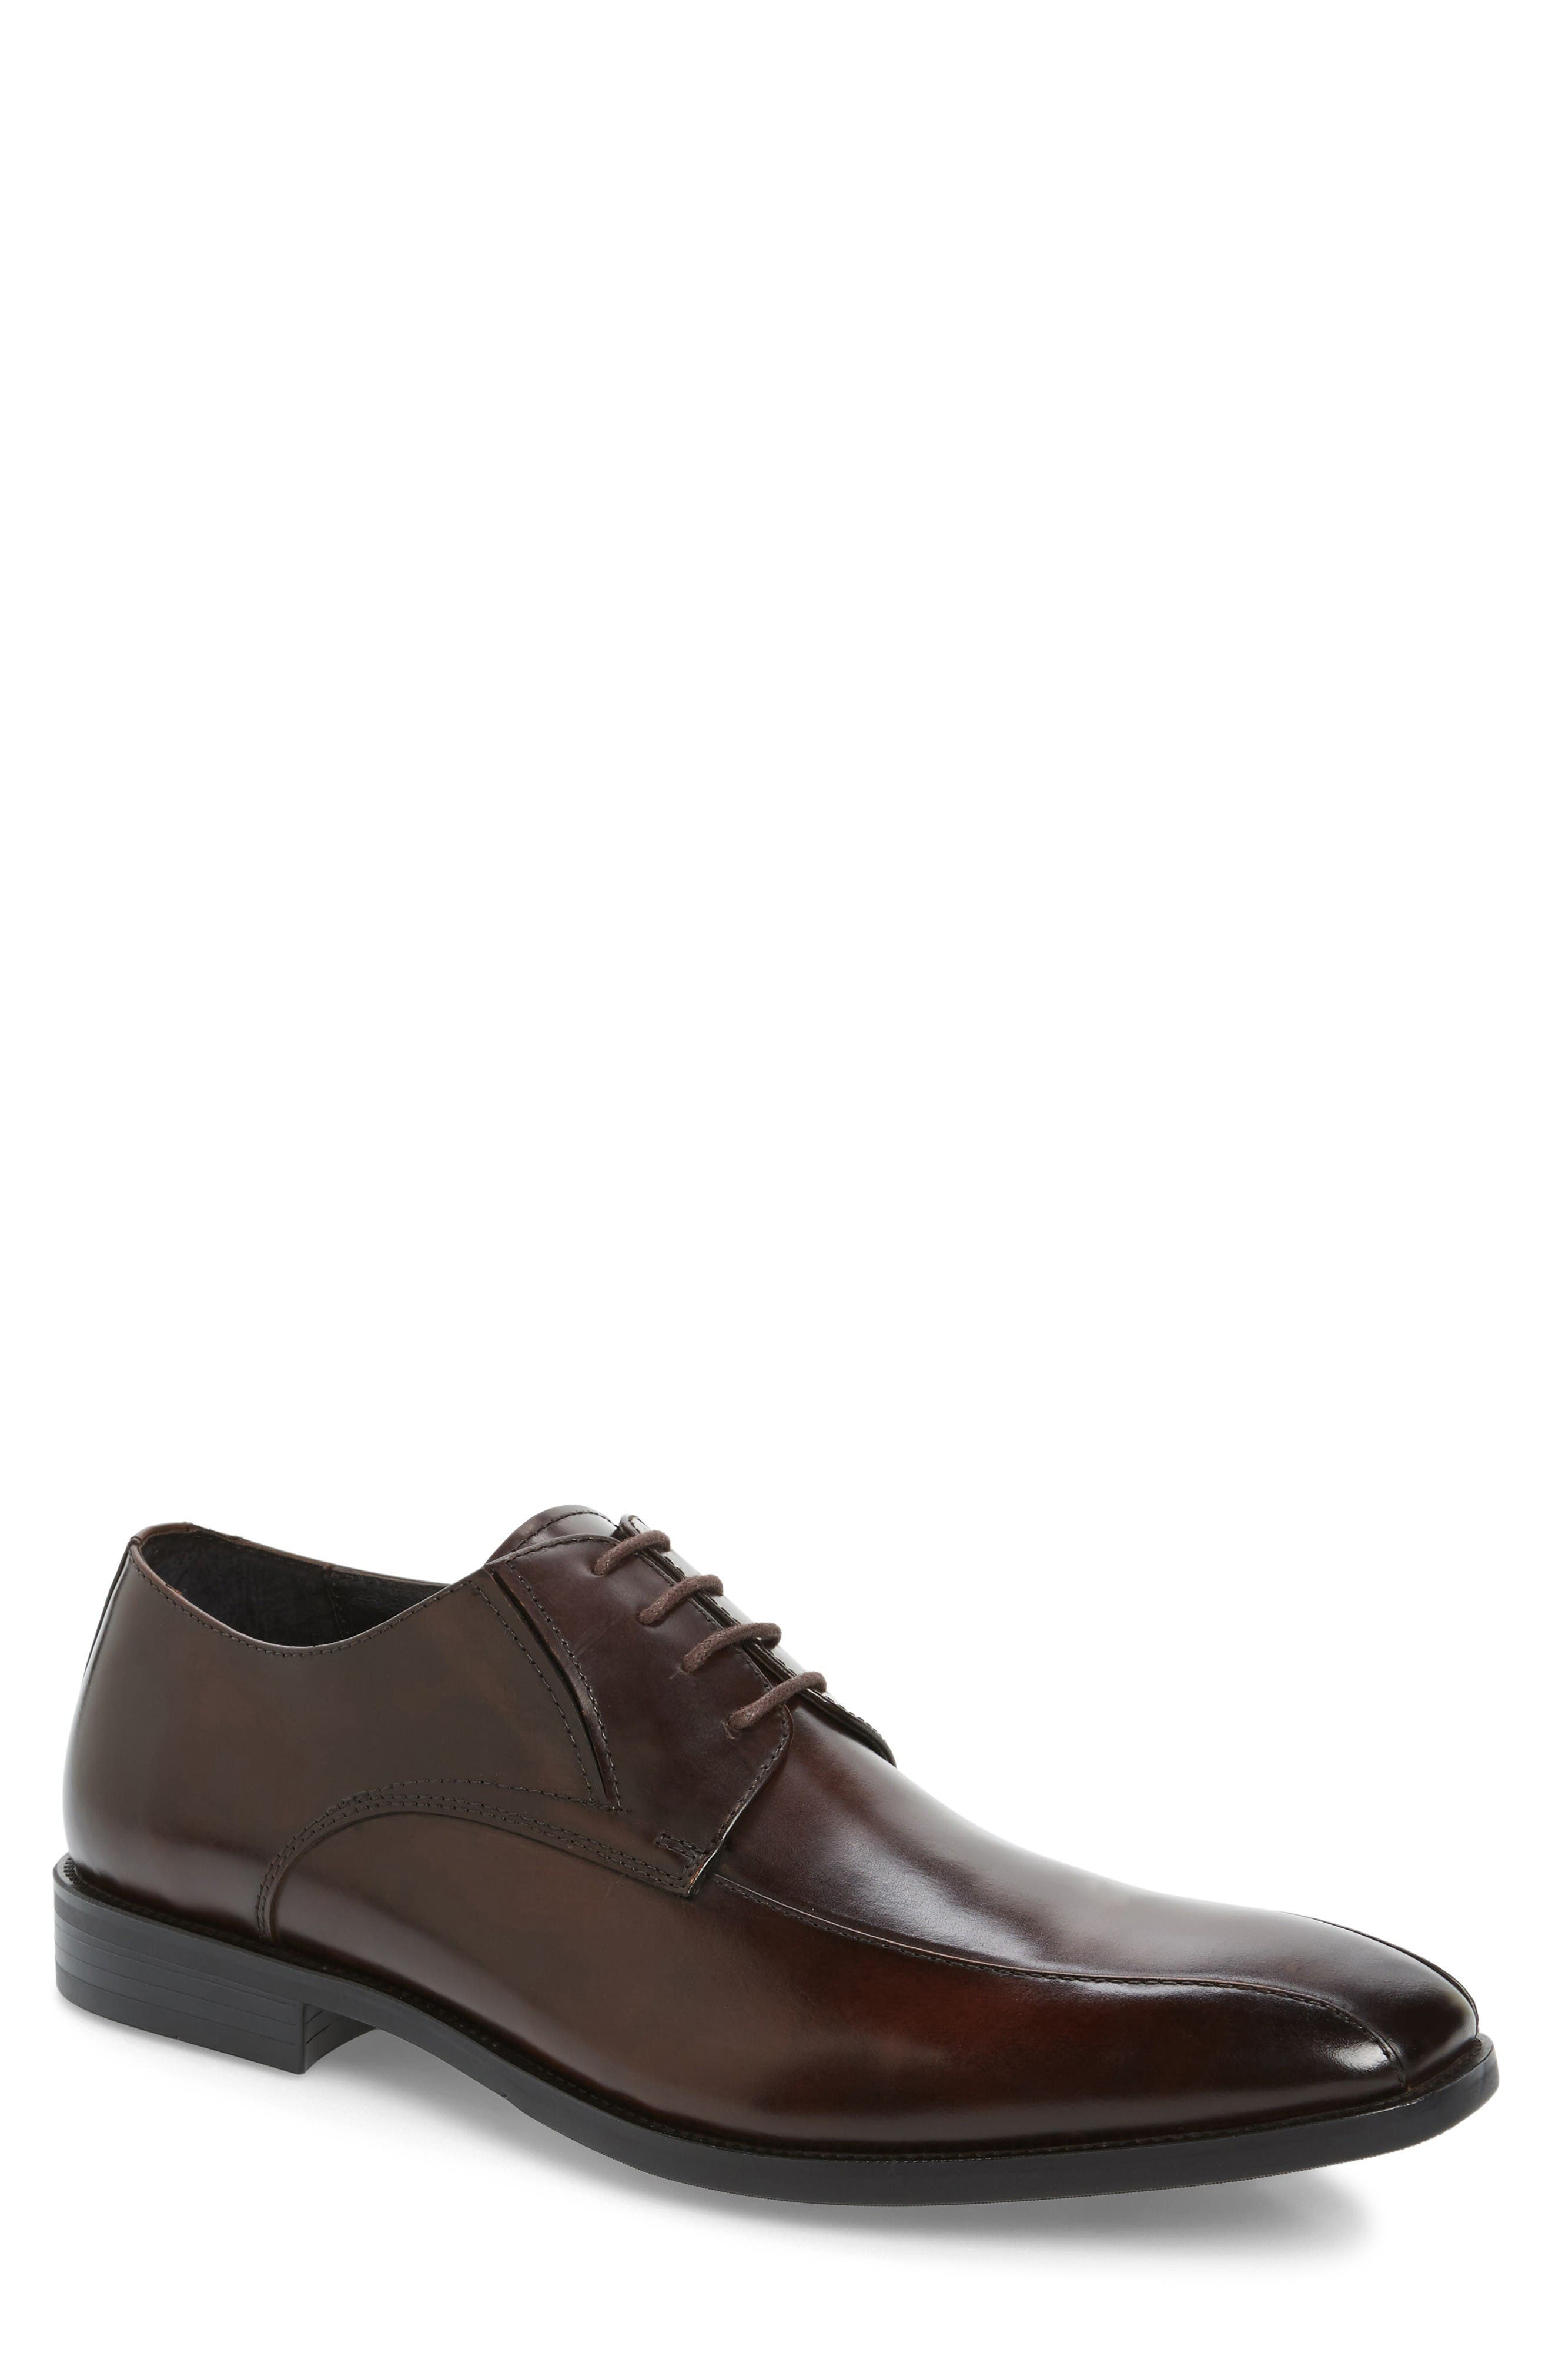 Main Image - Kenneth Cole New York Extra Ticket Bike Toe Derby (Men)